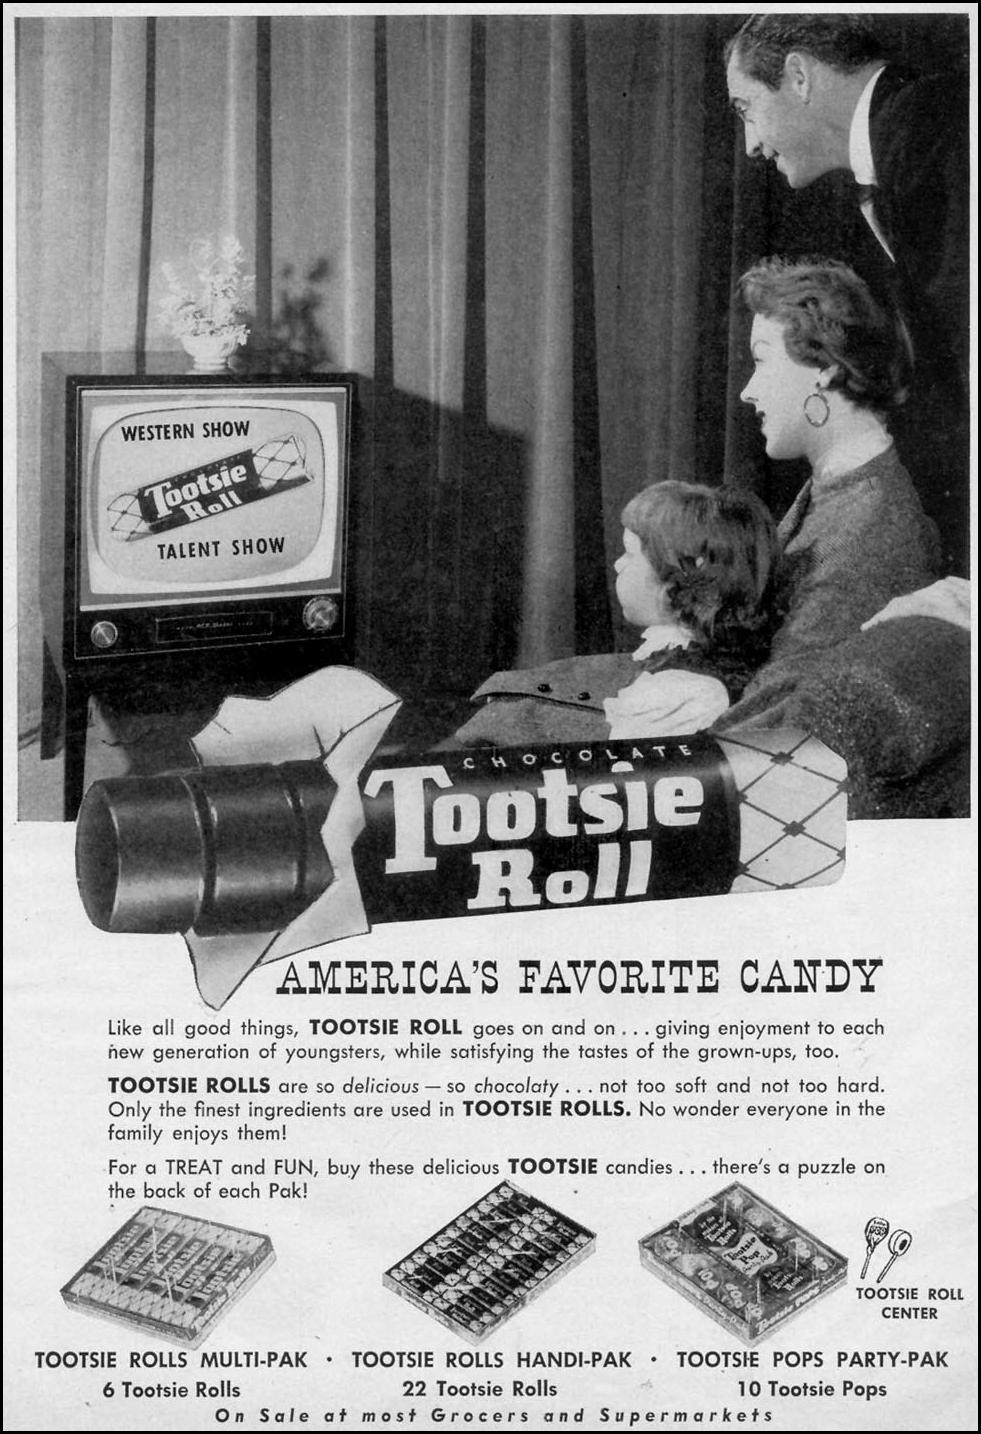 TOOTSIE ROLL WOMAN'S DAY 03/01/1954 p. 7